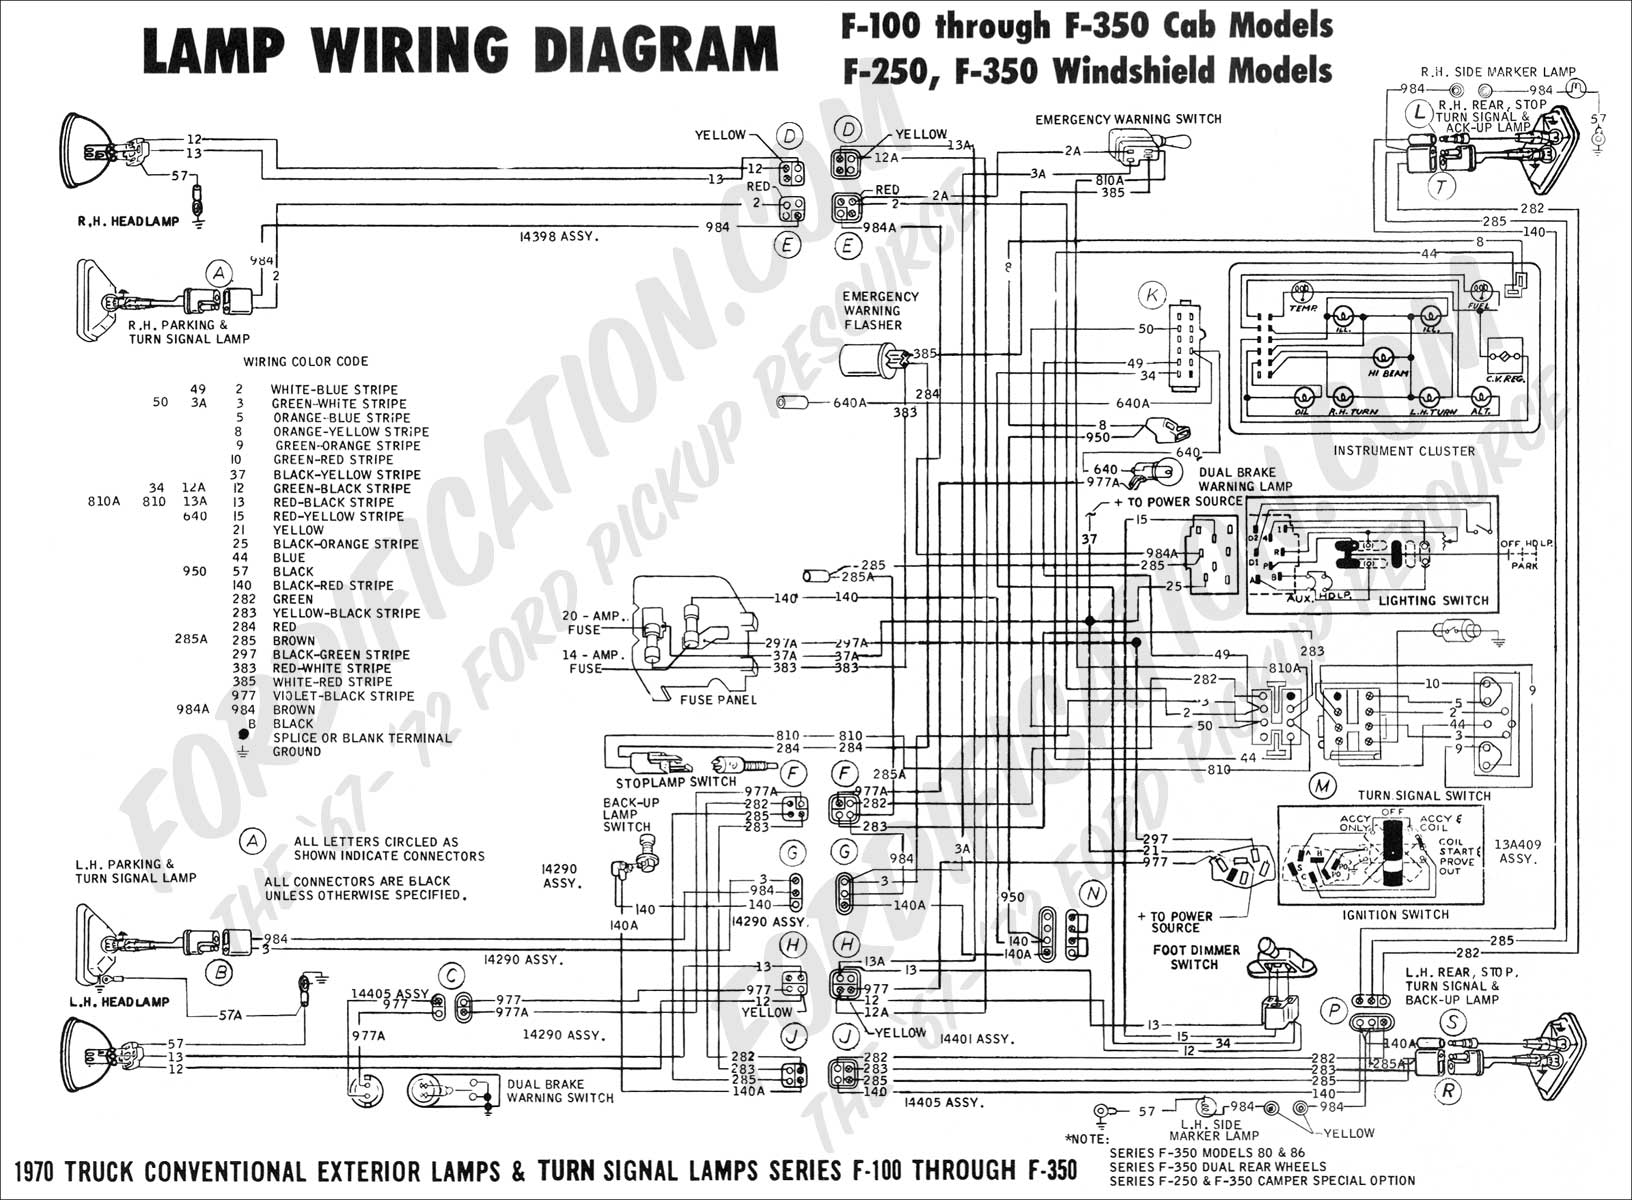 hight resolution of wiring diagram for 1996 ford f250 modern design of wiring diagram u2022 1998 dodge grand caravan wiring diagram 1998 ford f250 wiring diagram